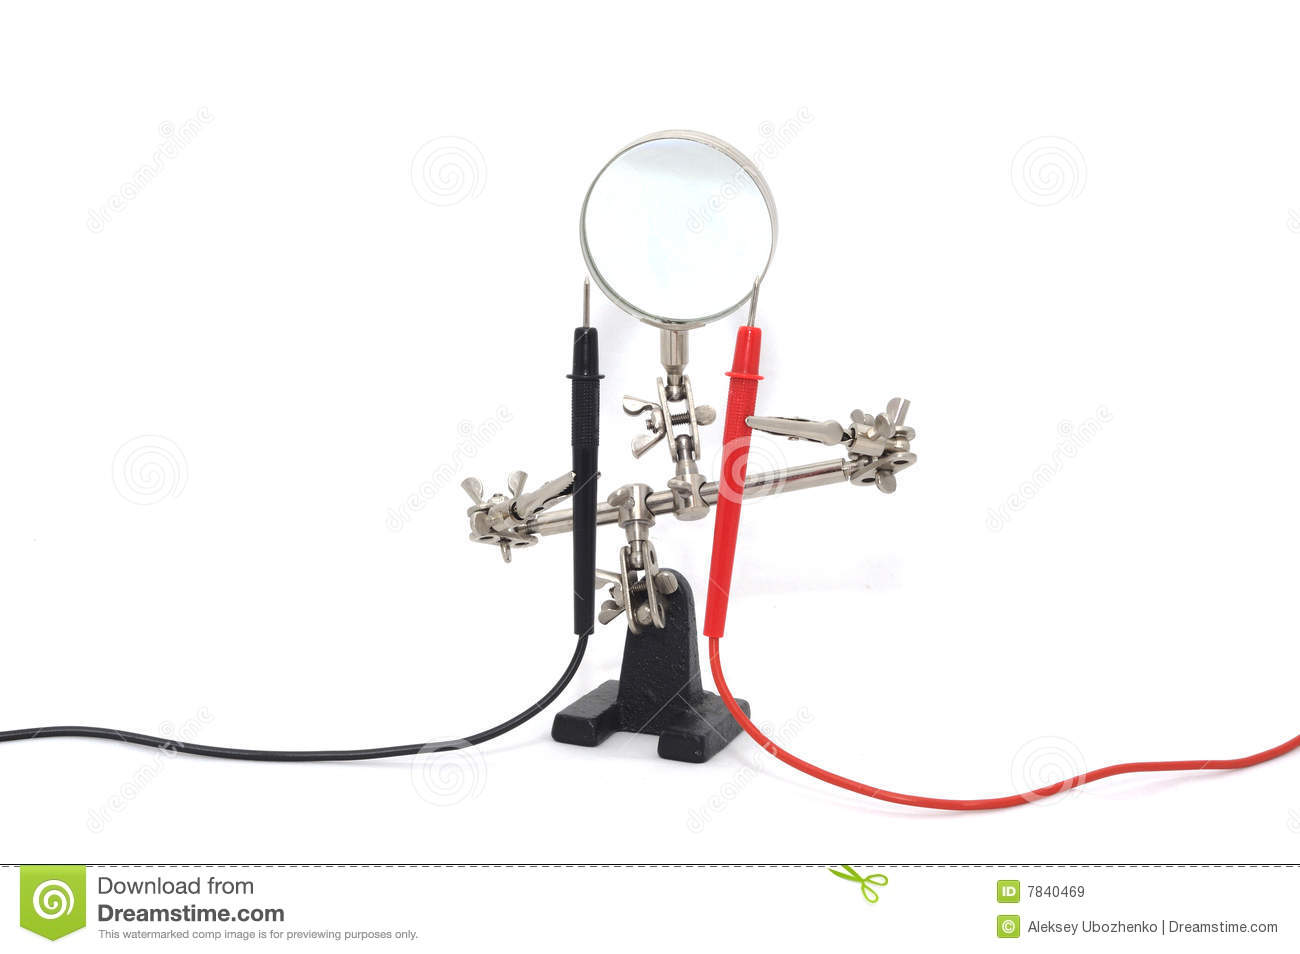 Electricity Testers Royalty Free Stock Images